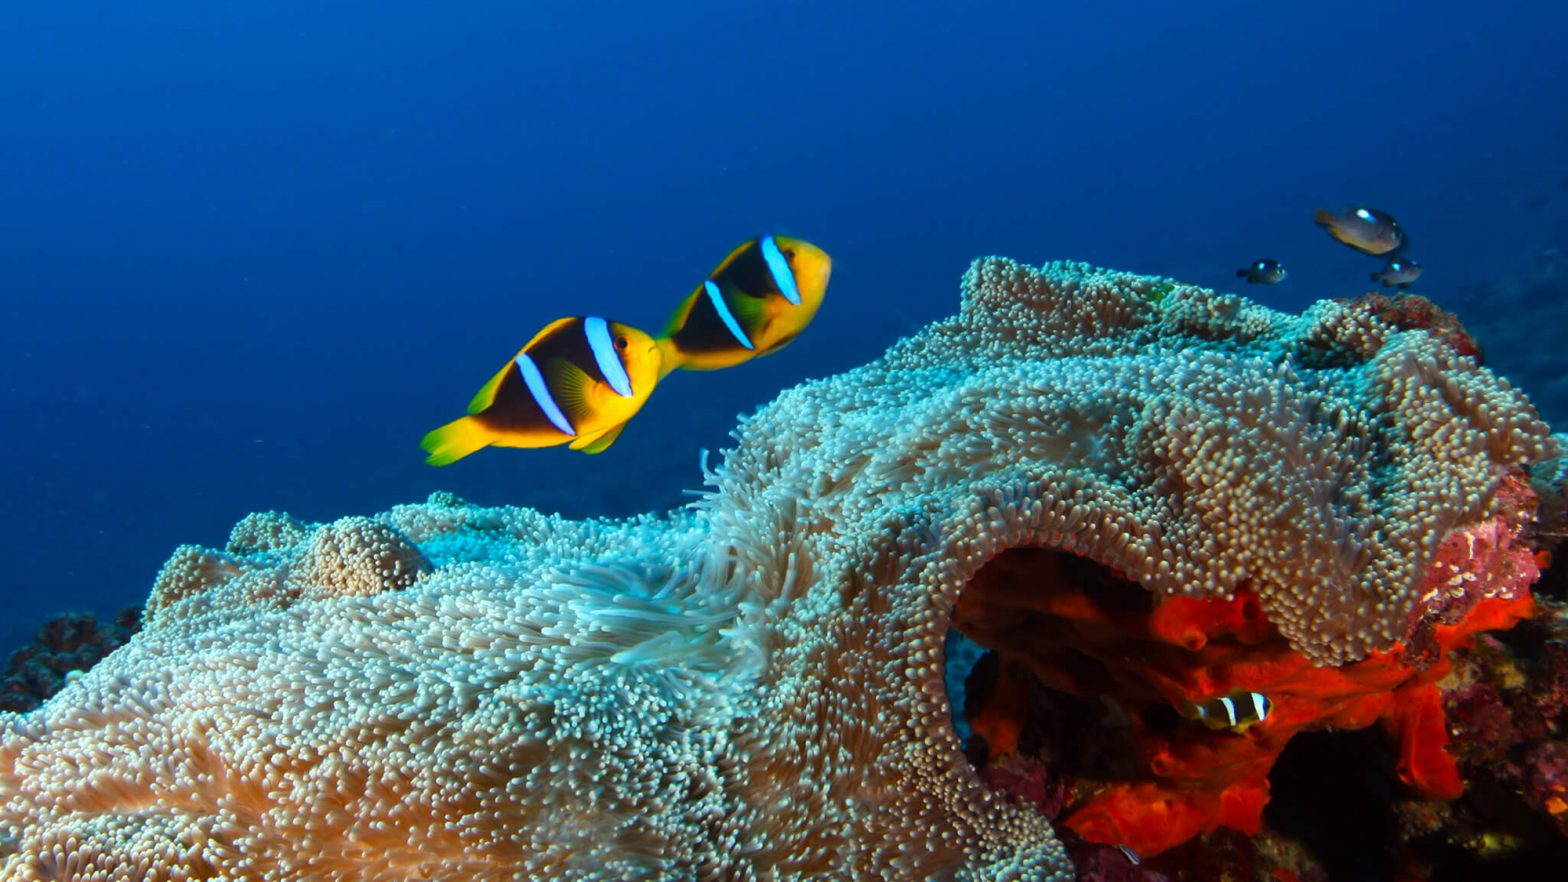 Two fish swim over a reef.